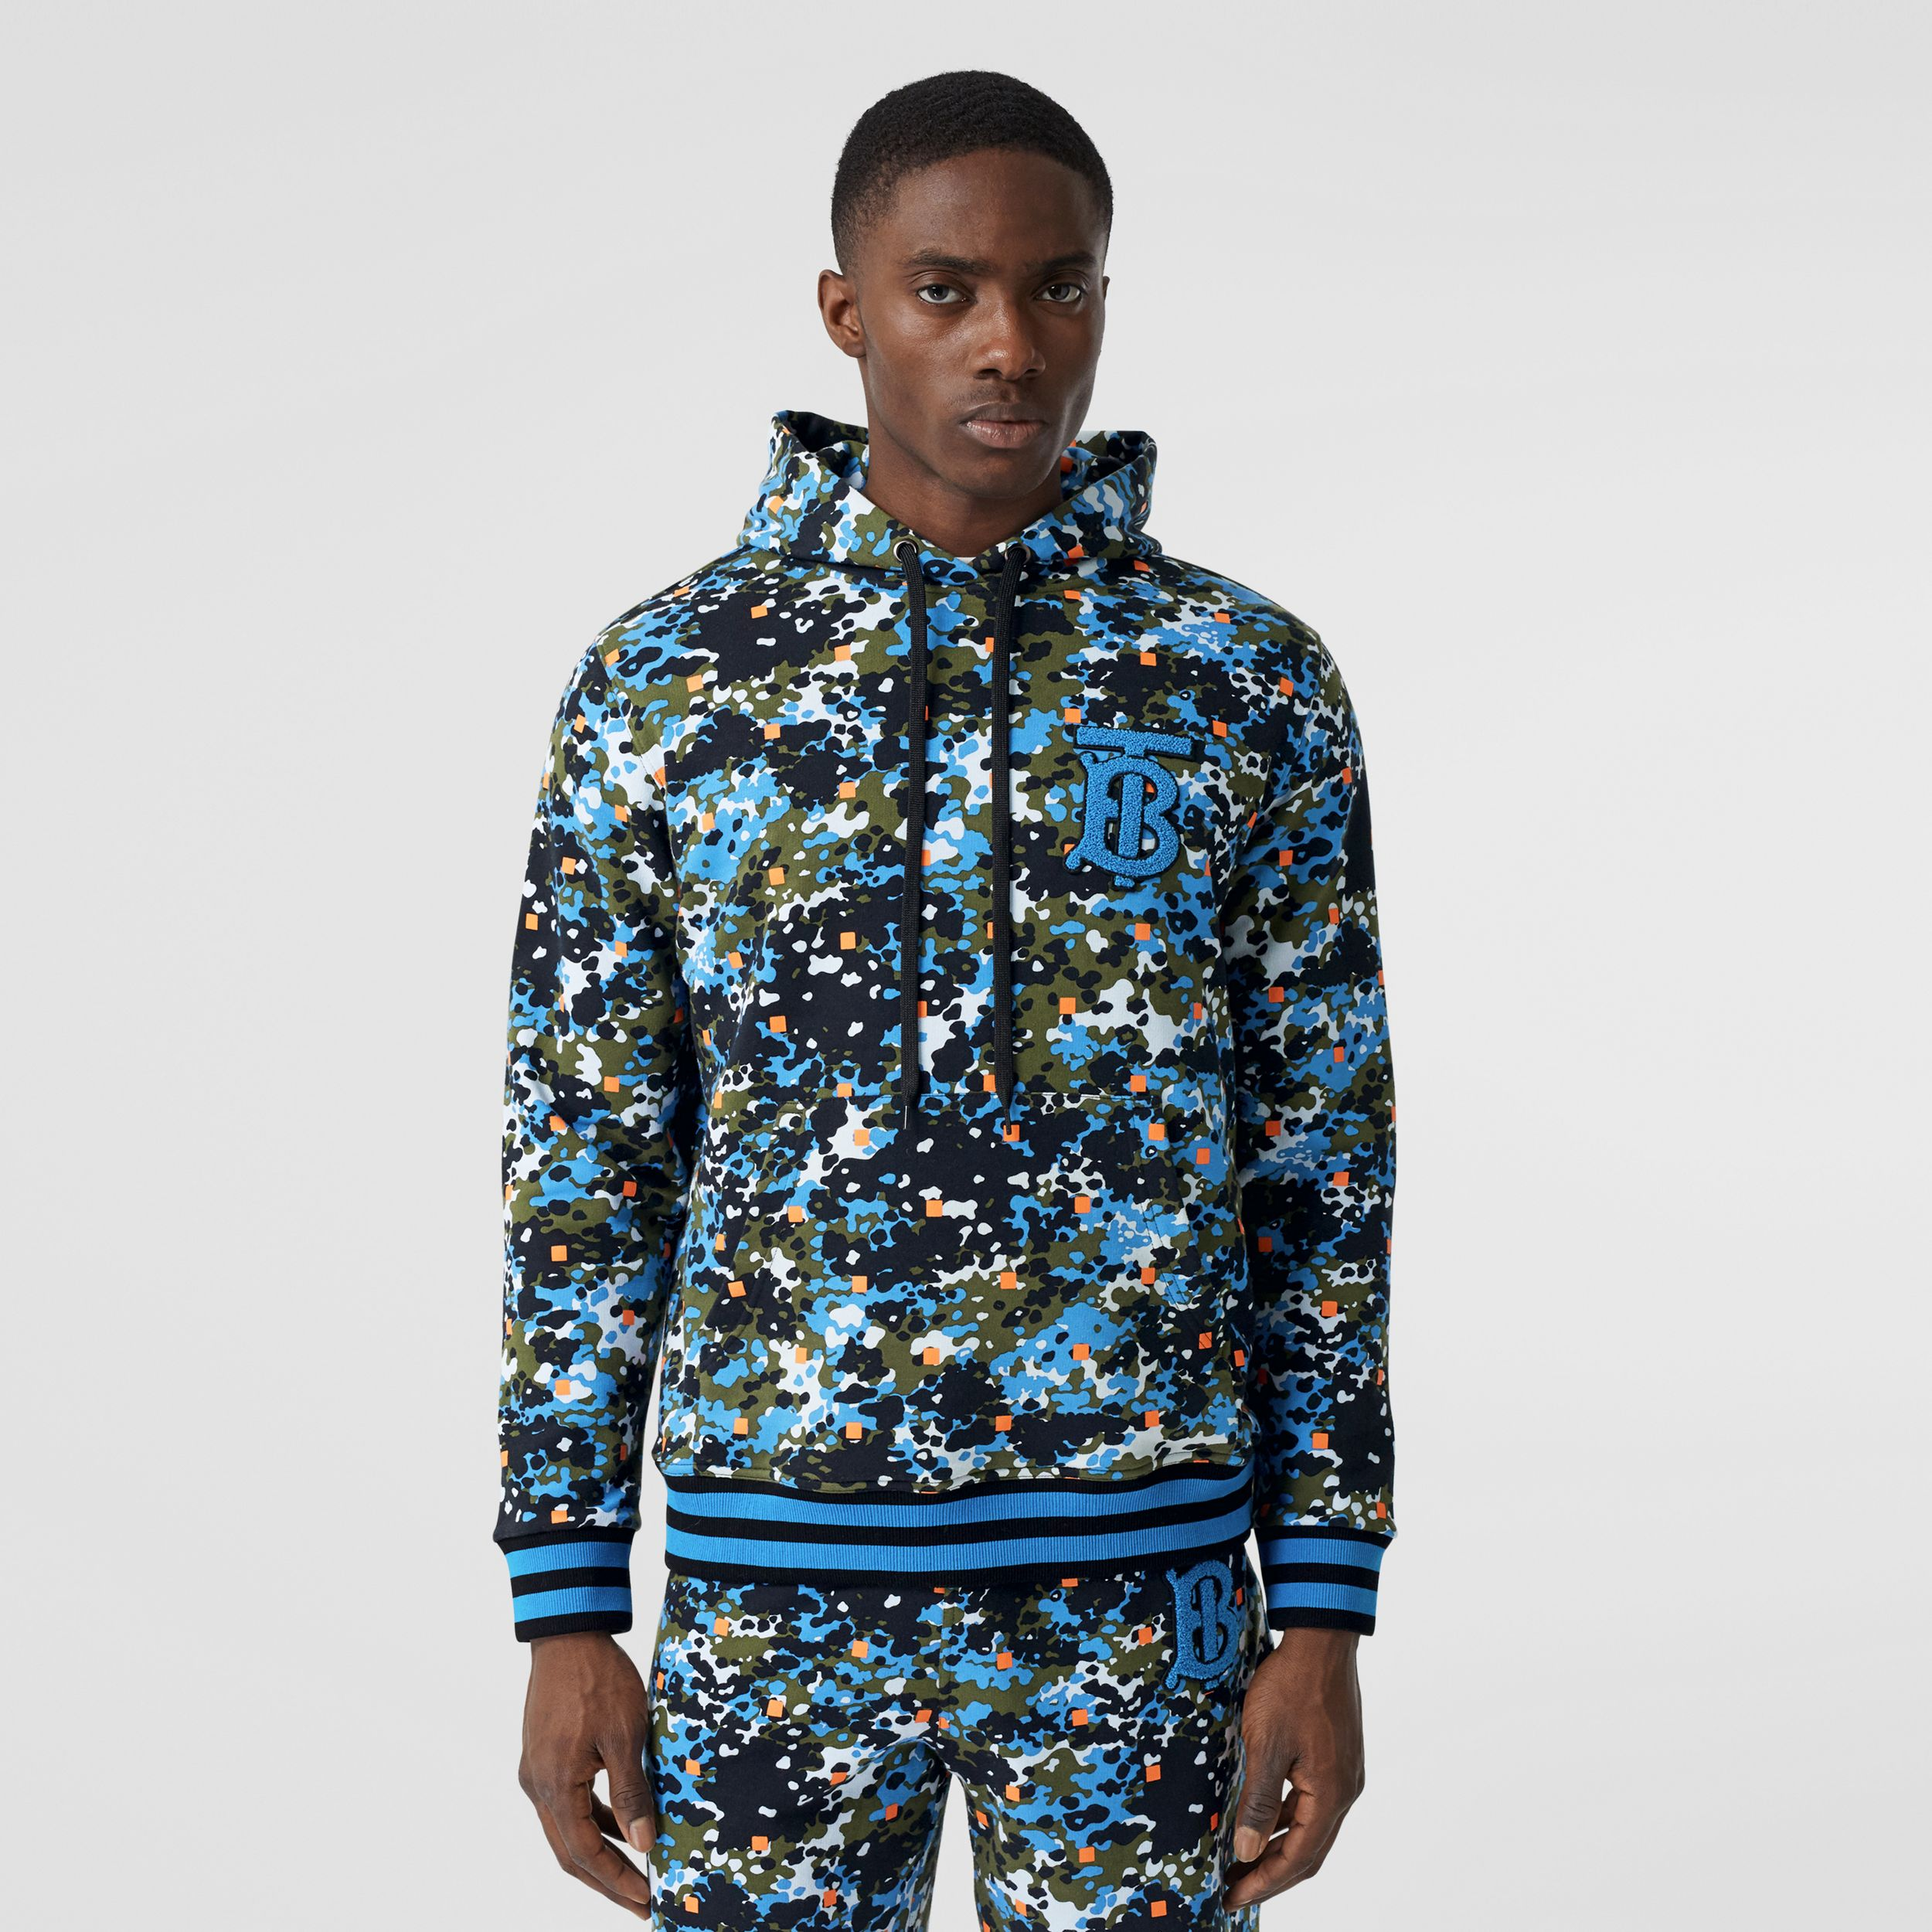 Monogram Motif Camouflage Print Cotton Hoodie in Caper Green - Men | Burberry - 1